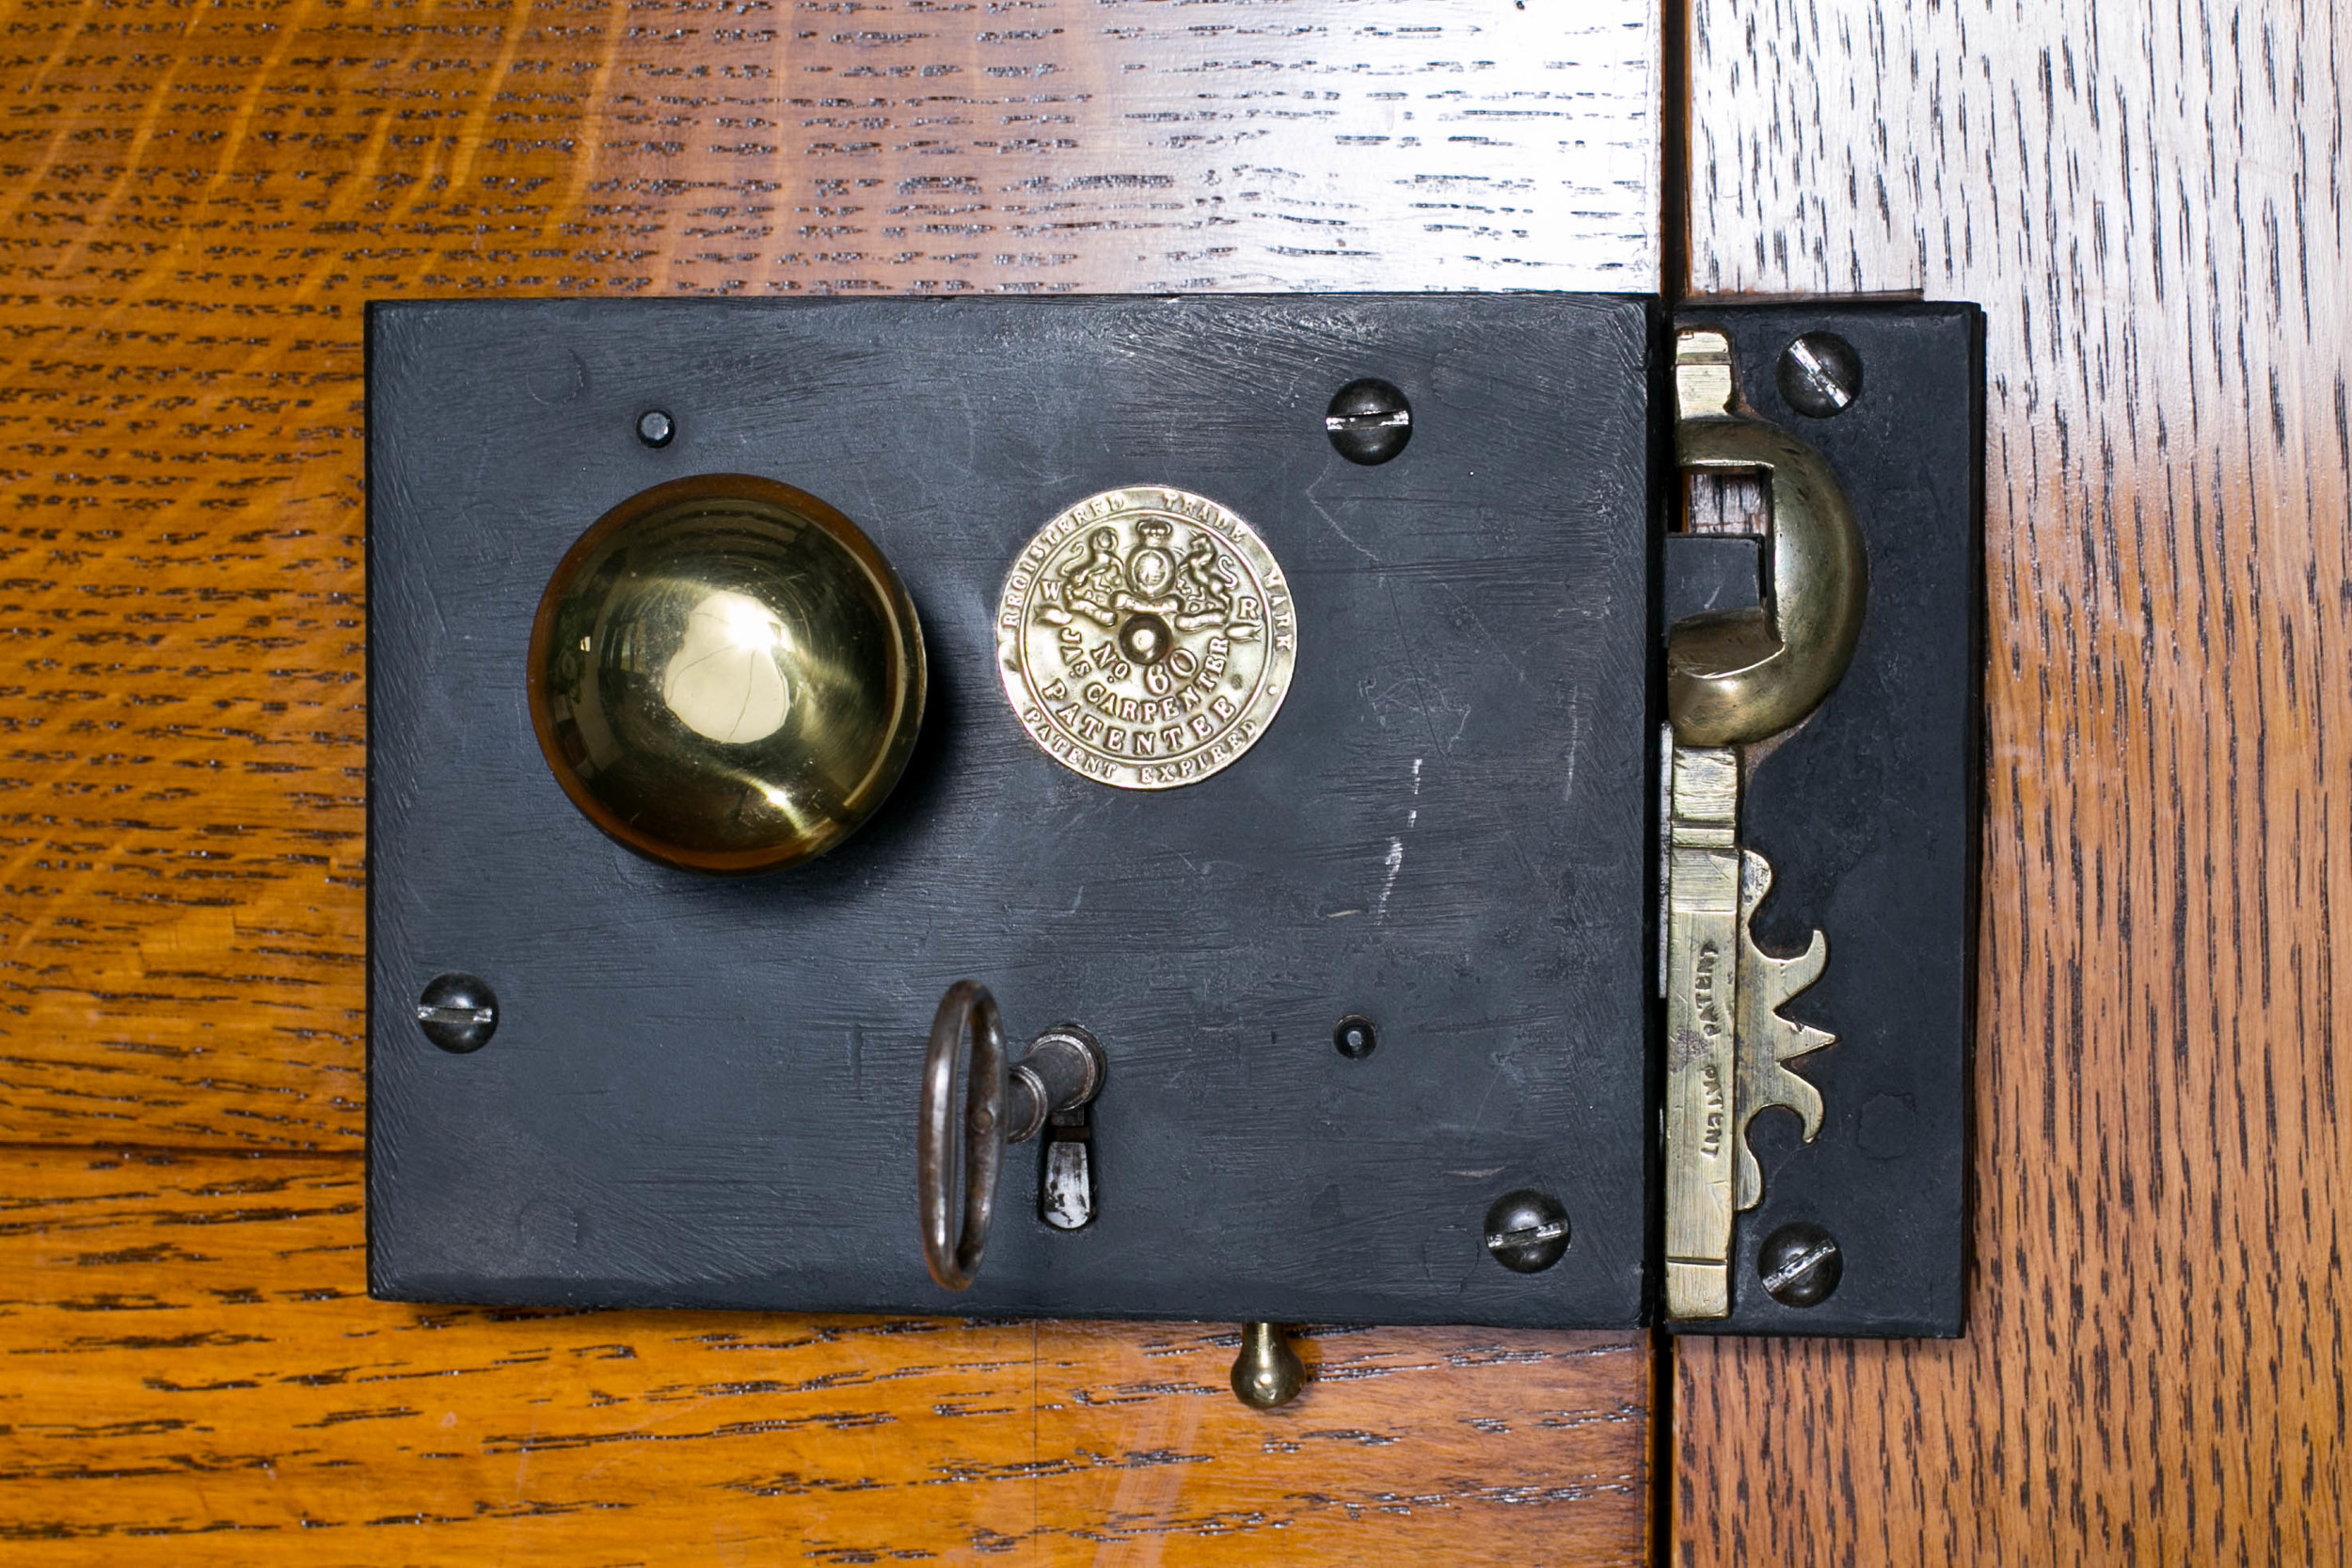 This antique Carpenter lock bears the coat of arms for King William IV who reigned Great Britain and Ireland between 1830 and 1837. This design was originally patented  by James Carpenter and began production in England in 1830